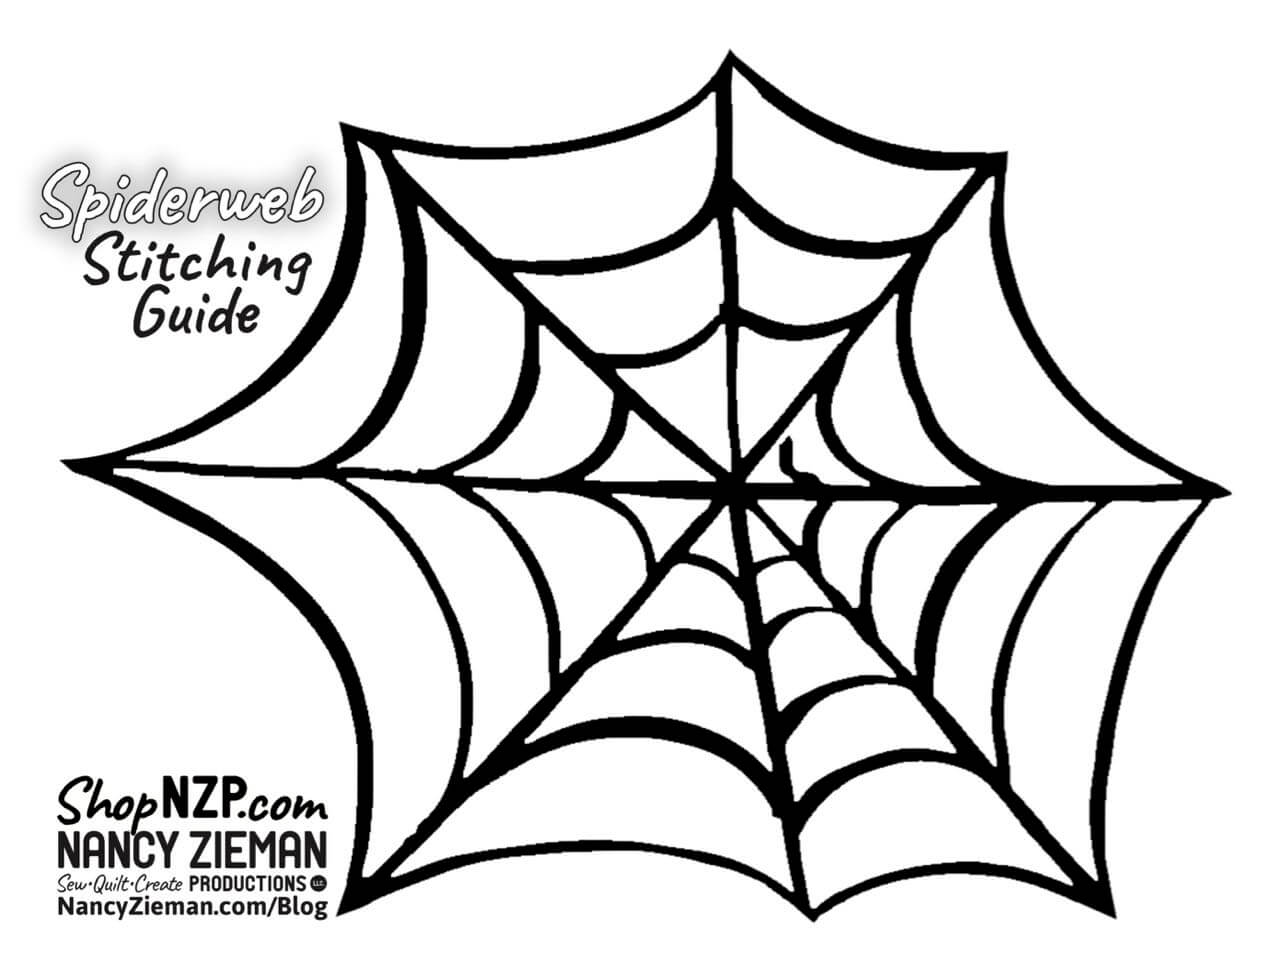 Spiderweb Stitching Guide at the Nancy Zieman Productions Blog